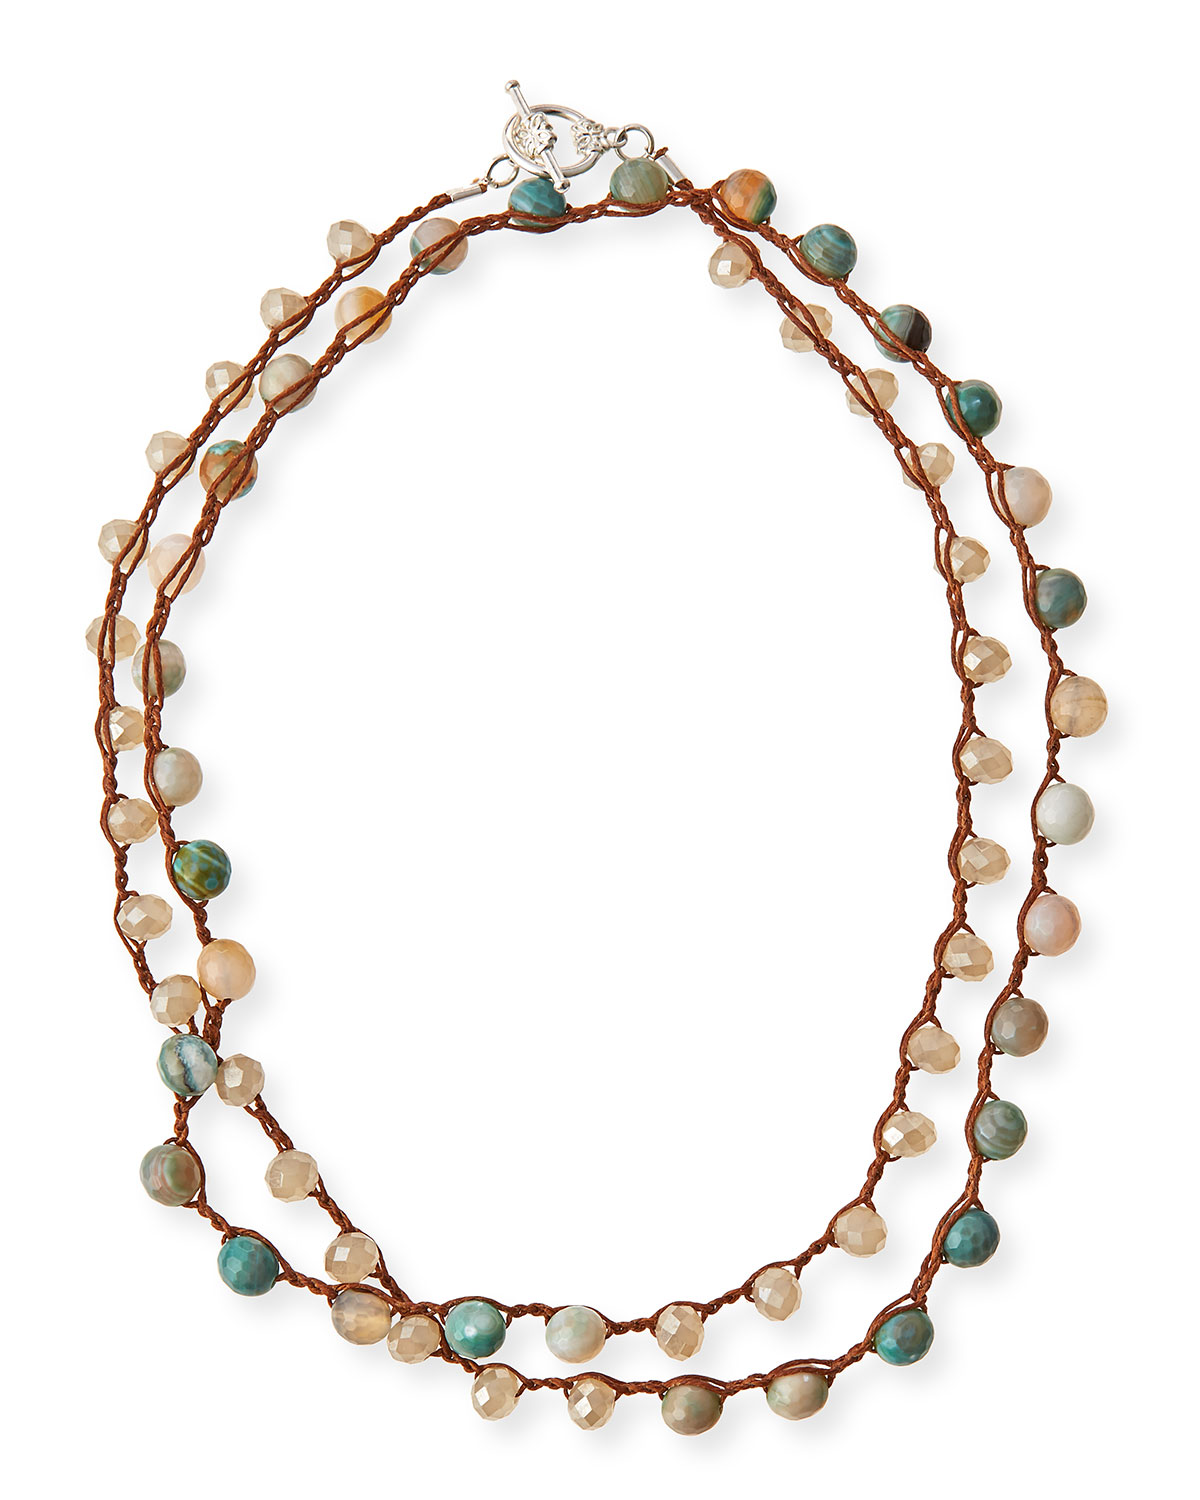 An Old Soul Jewelry Amazonite Crystal Long Necklace 36 Neiman Marcus